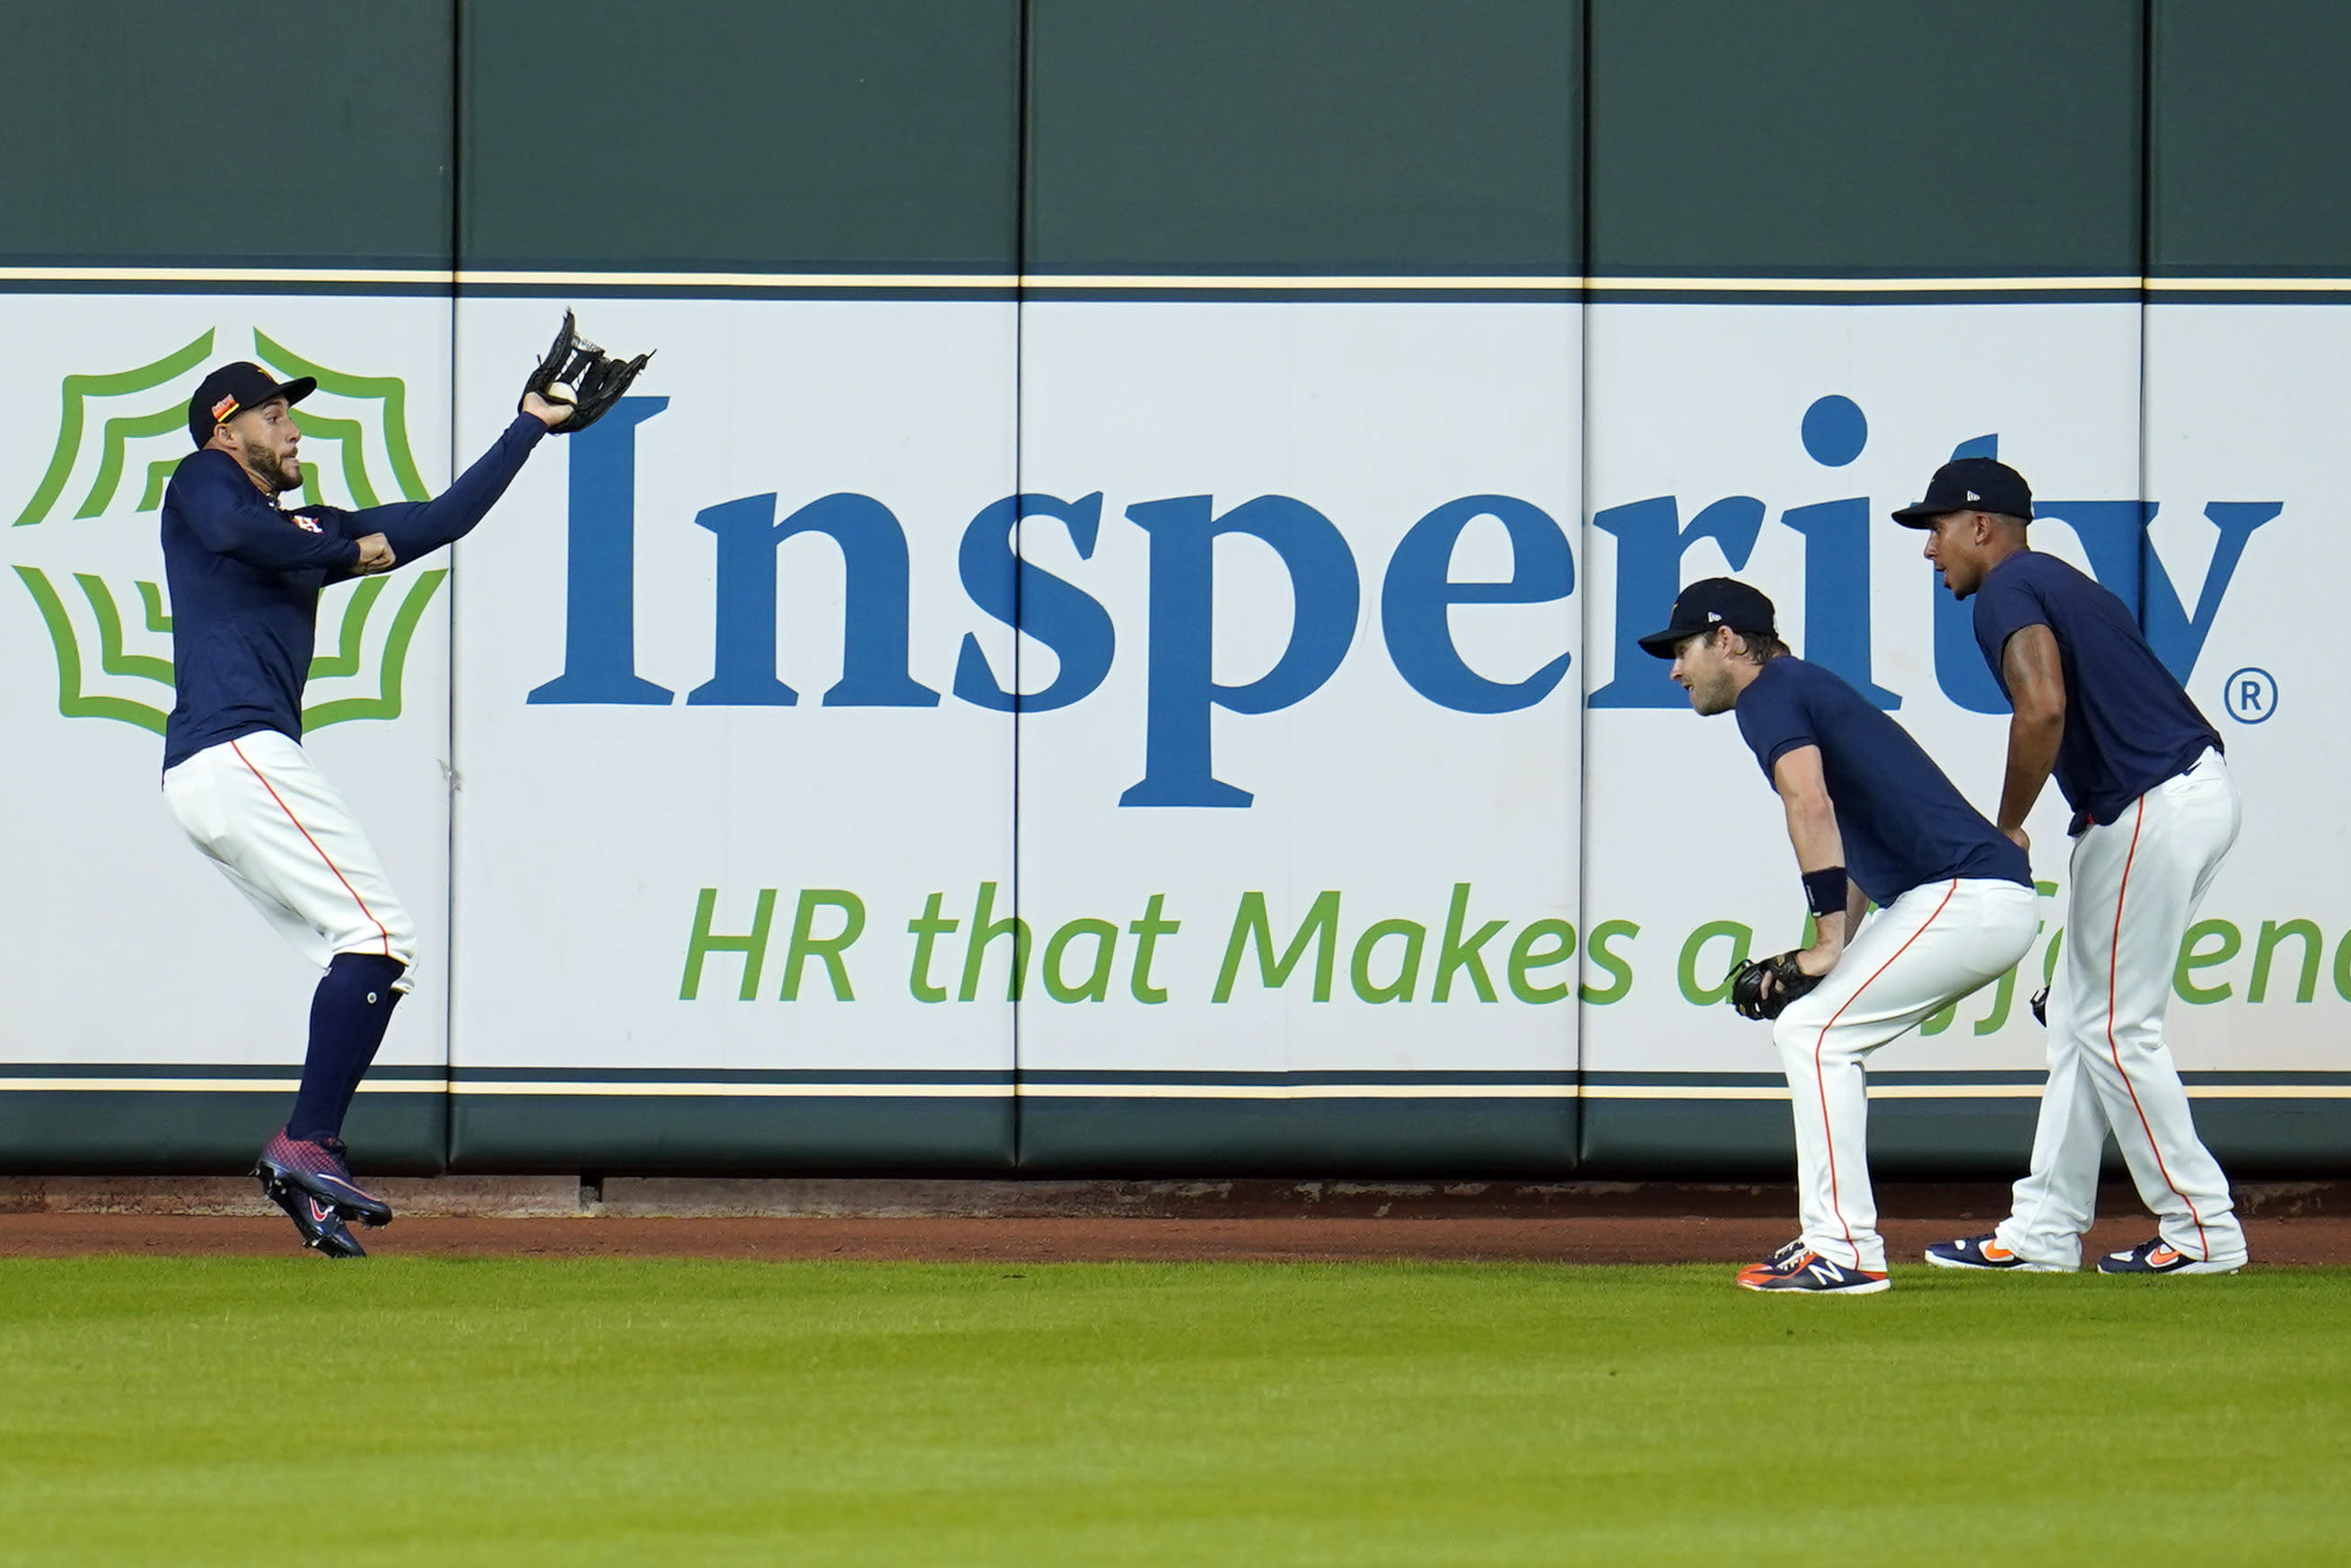 Houston Astros center fielder George Springer, left, makes a catch as outfielders Josh Reddick, center, and Michael Brantley watch during a baseball practice at Minute Maid Park, Sunday, July 5, 2020, in Houston. (AP Photo/David J. Phillip)